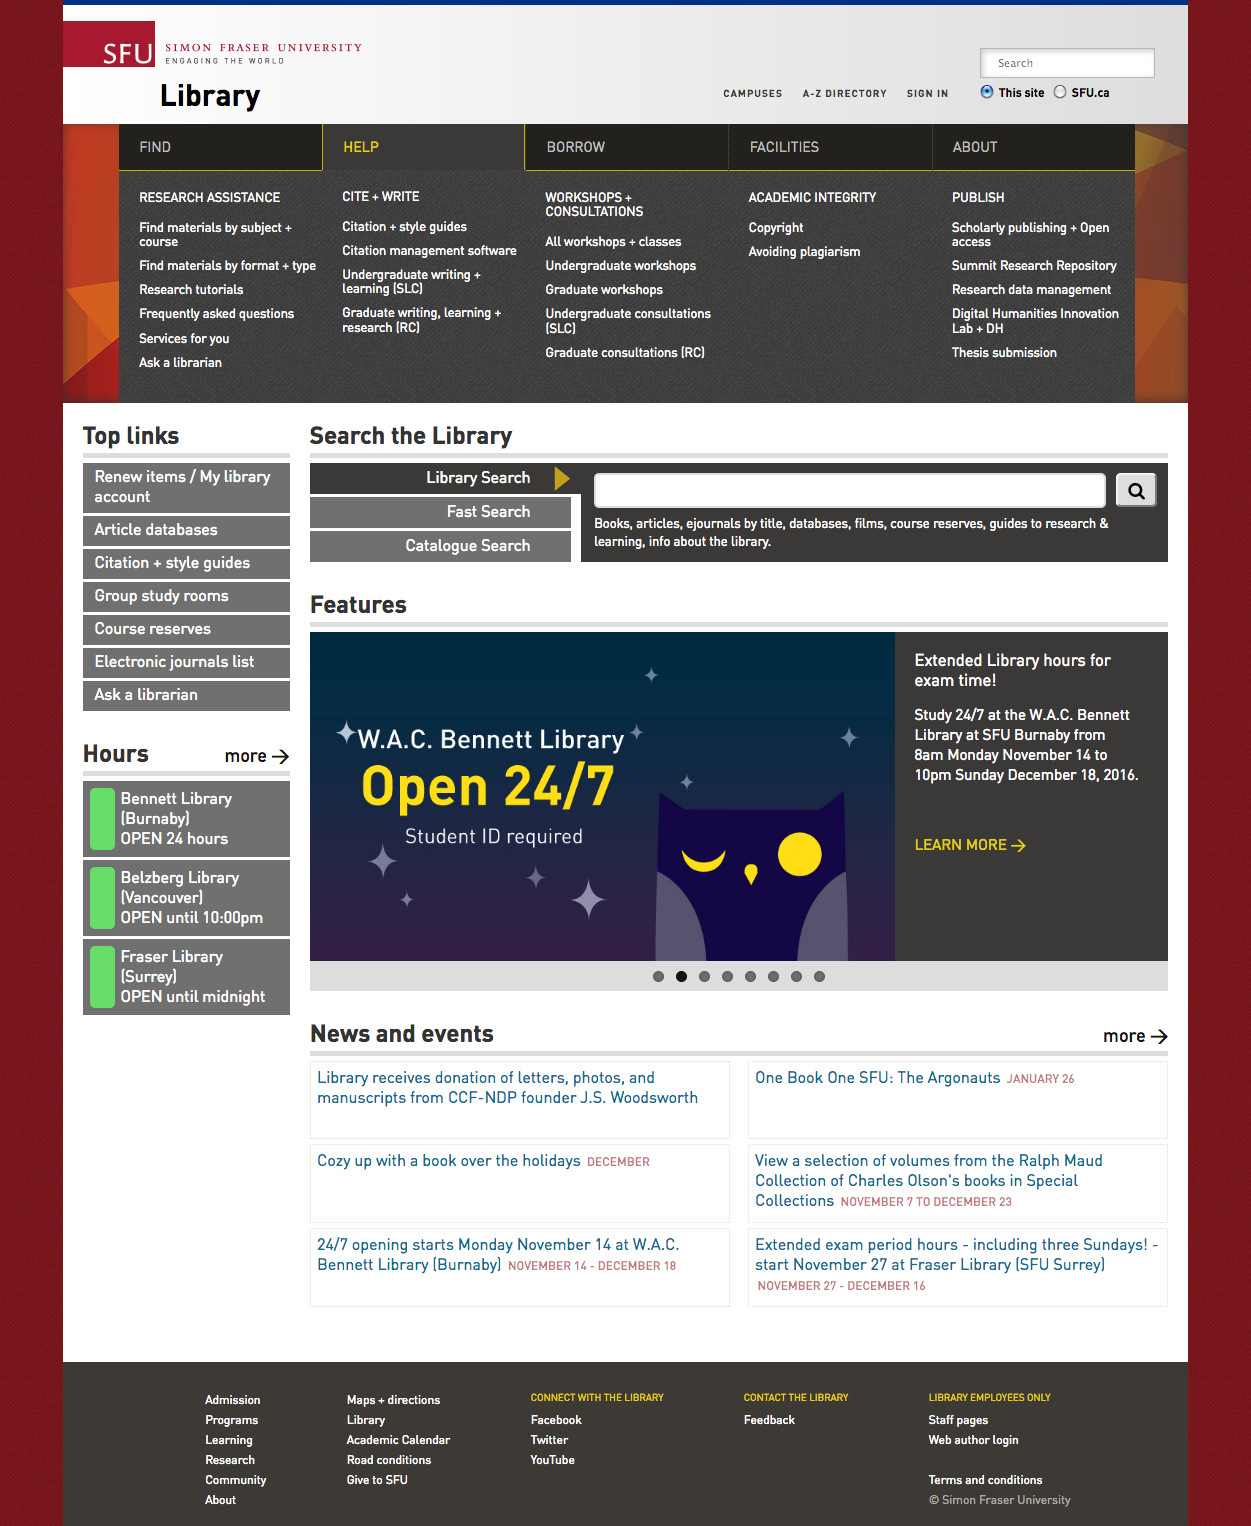 Simon Fraser University Library Main Page - Menu Expanded